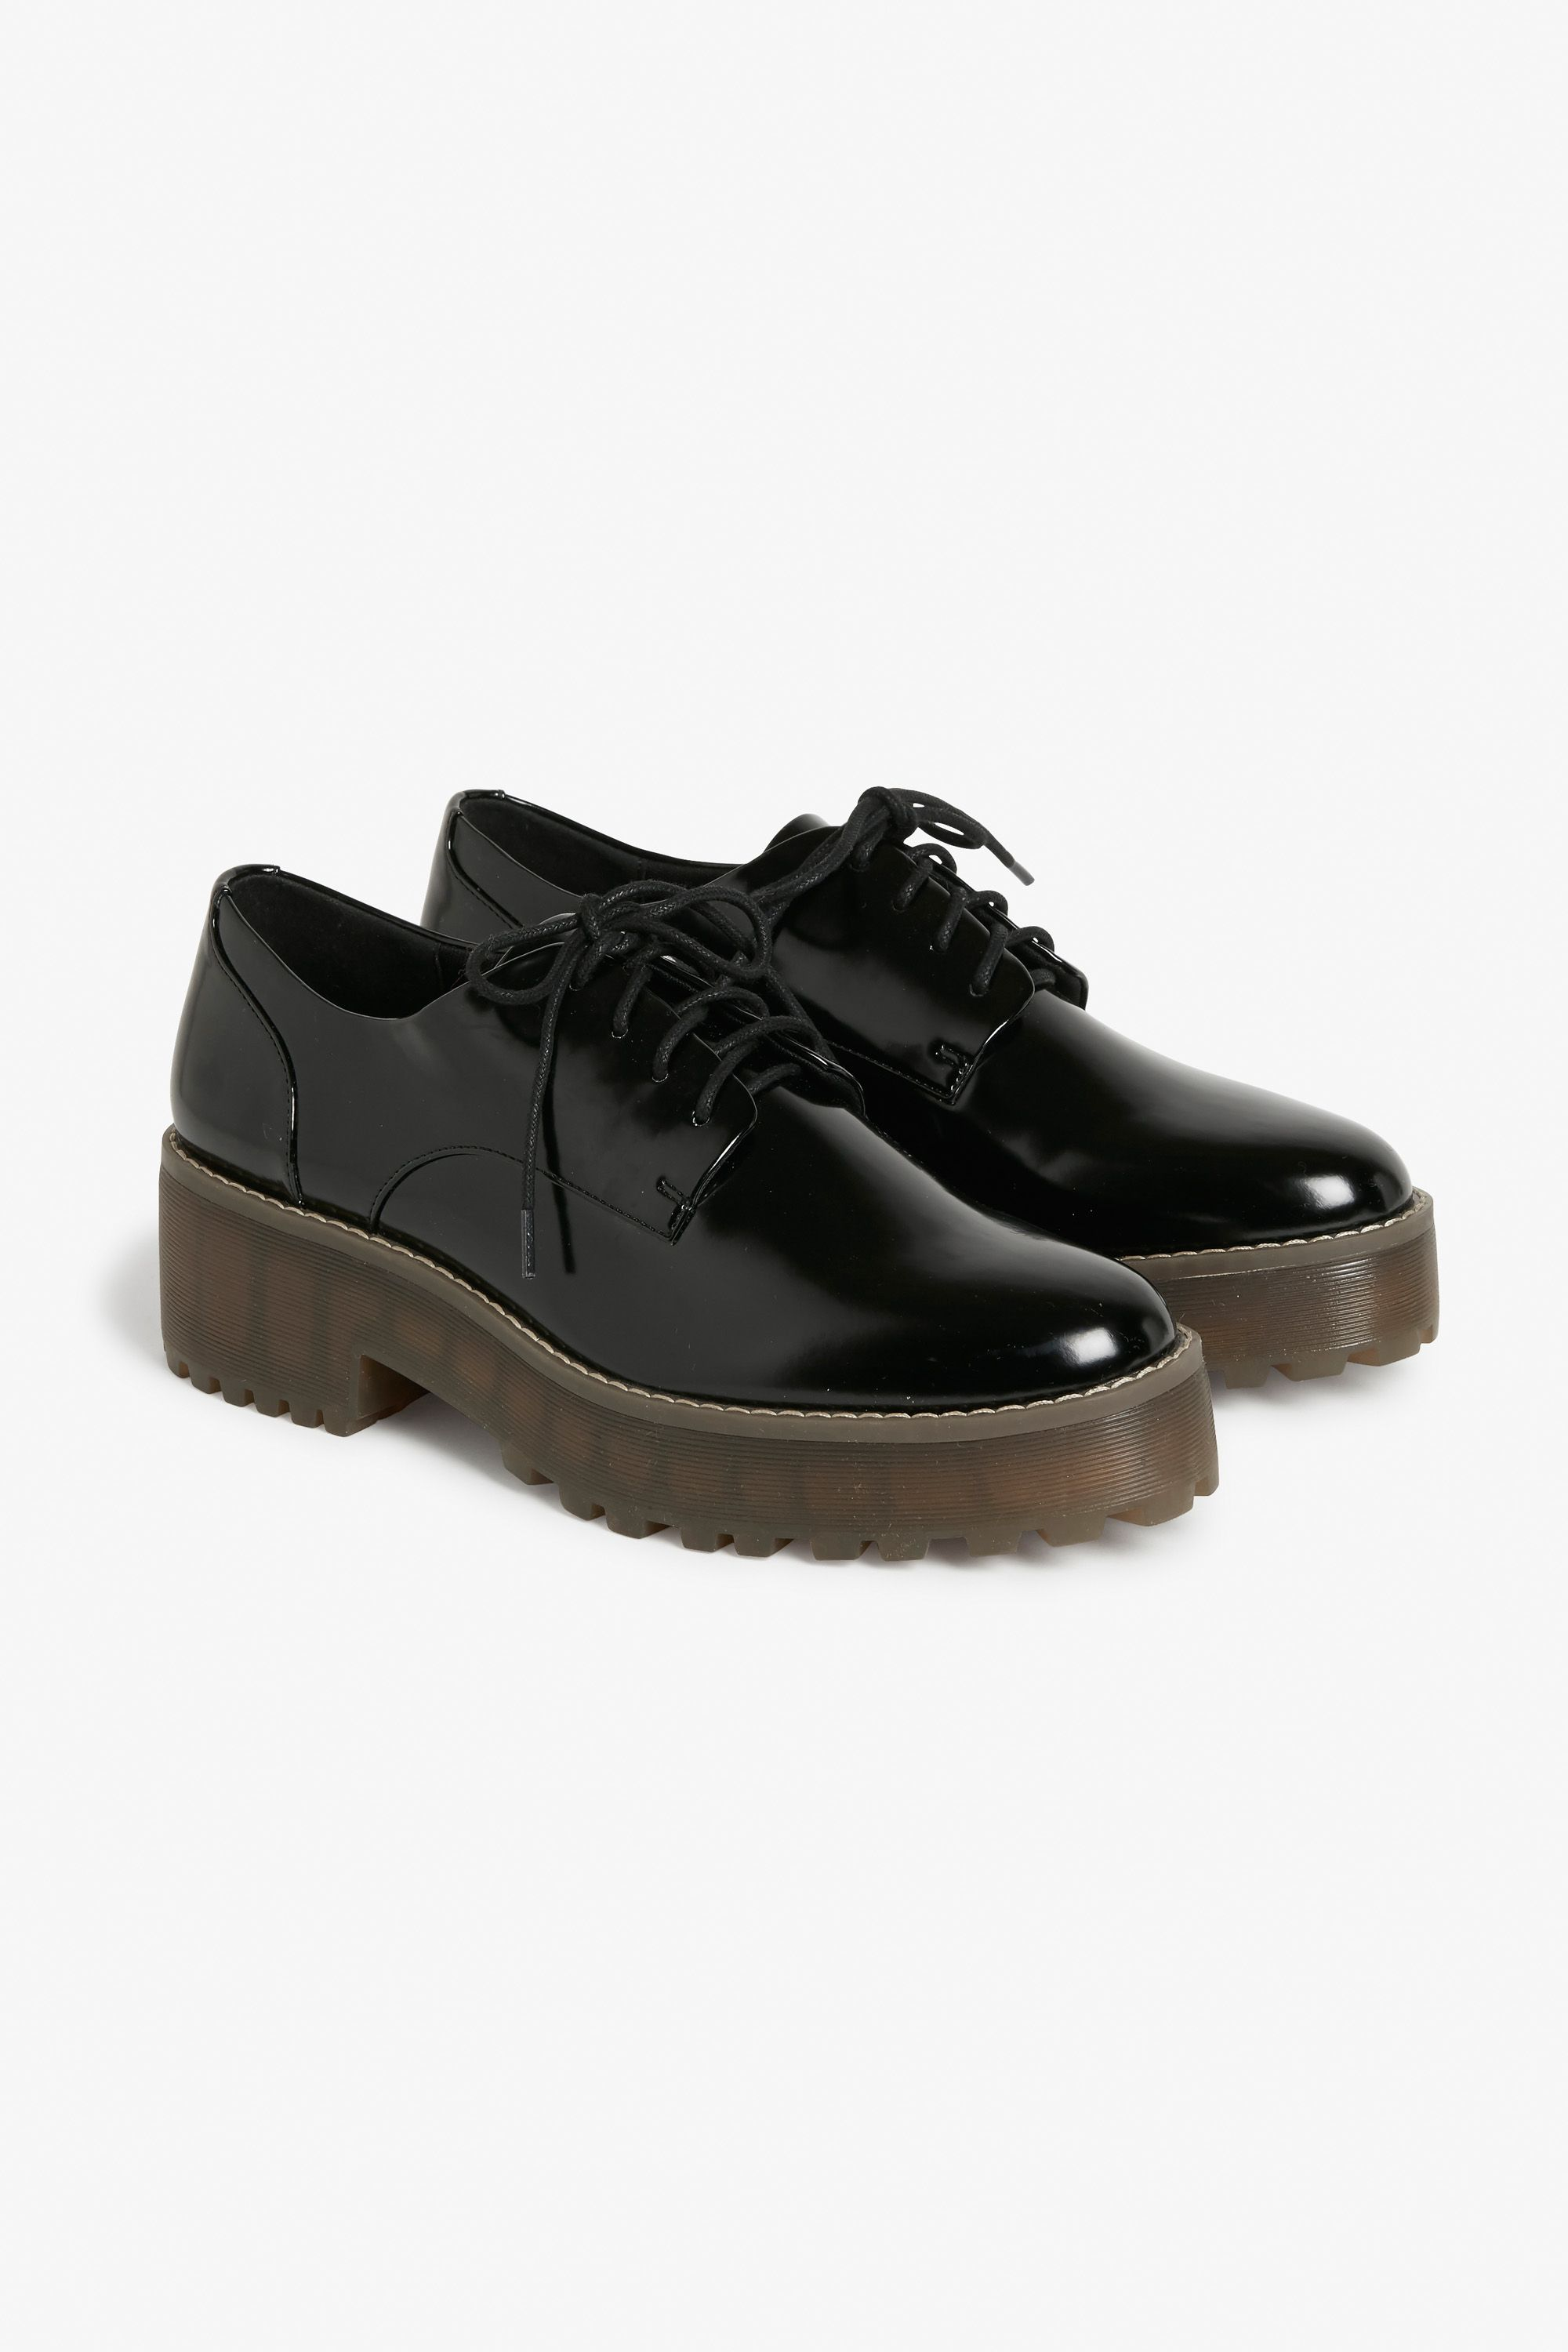 3f99e089447 These shiny wingtip oxfords with their chunky platform soles will elevate  any look you ve put together. Dress  Slammin . Wide leg trousers  Oh yes.